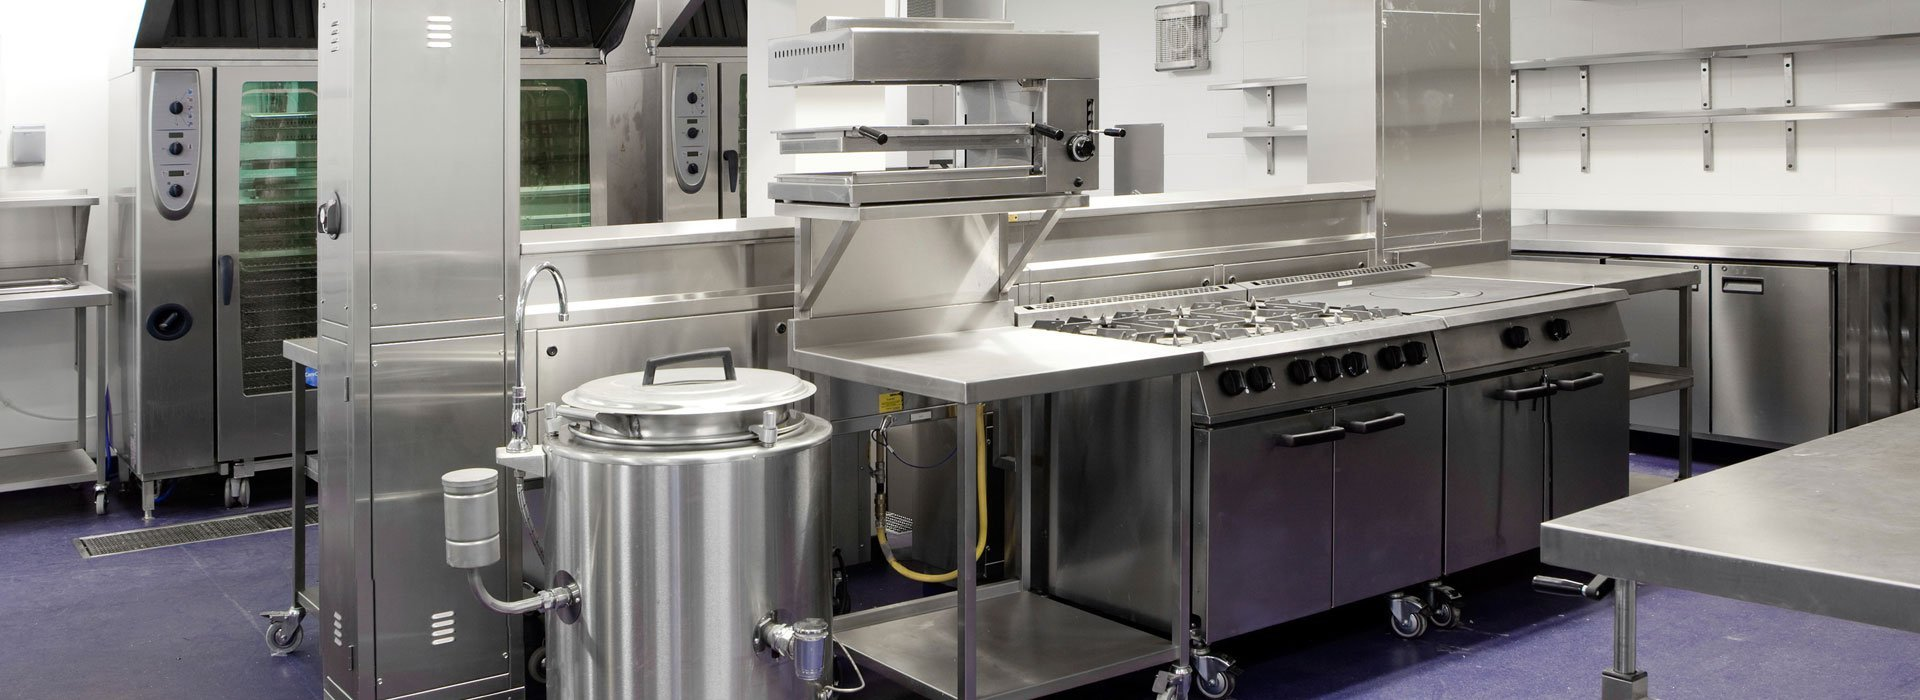 commercial kitchen design uk kitchen design and planning expert in gwent 232